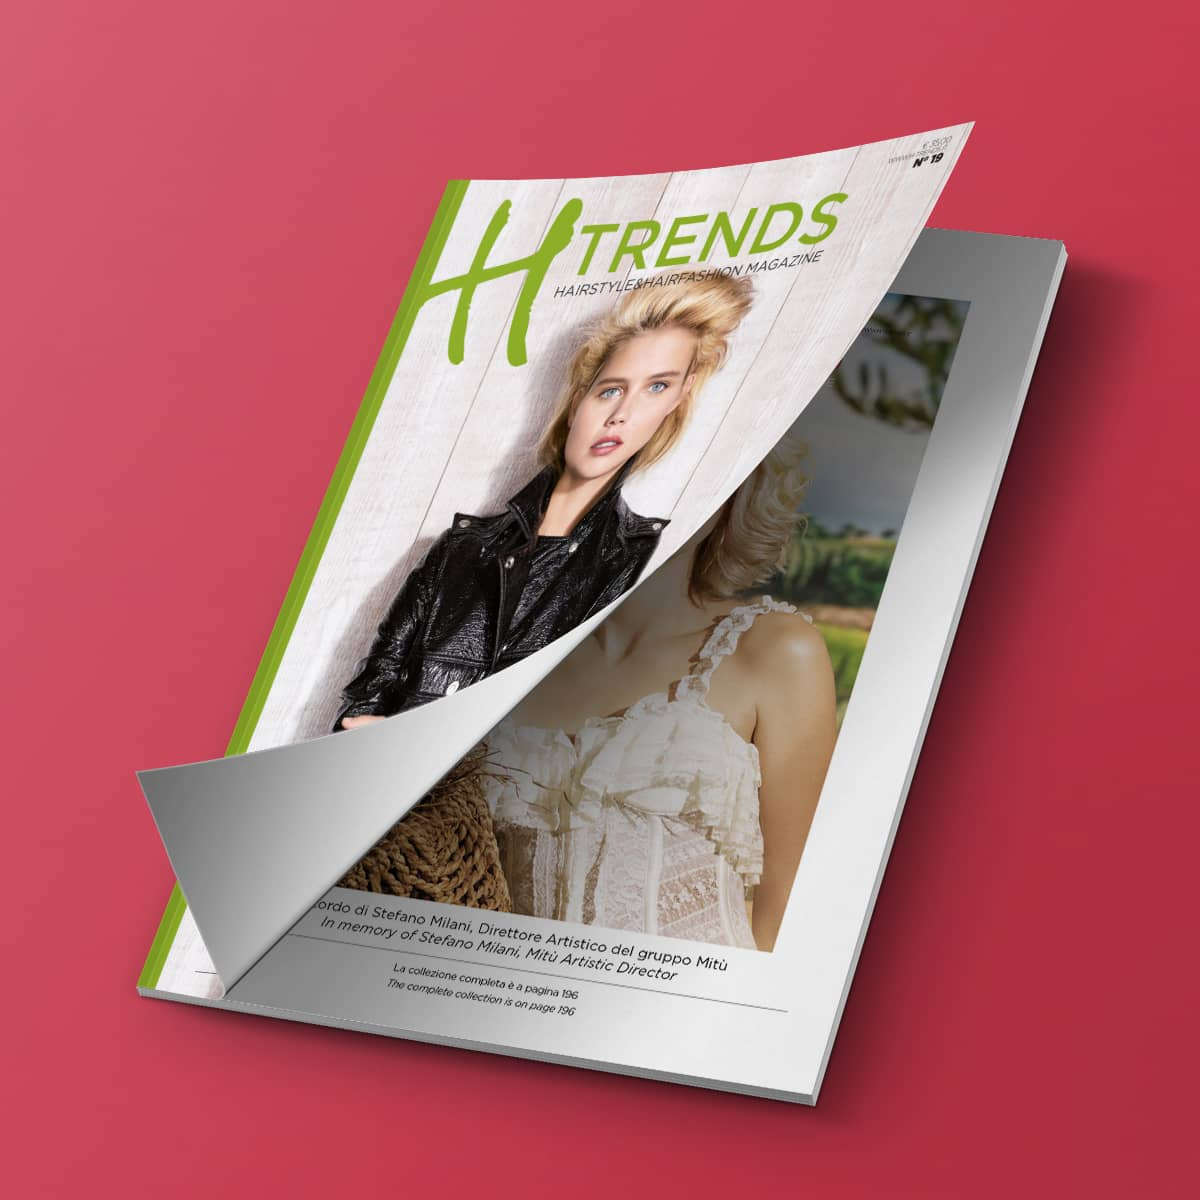 HTrends-19-front-cover-product